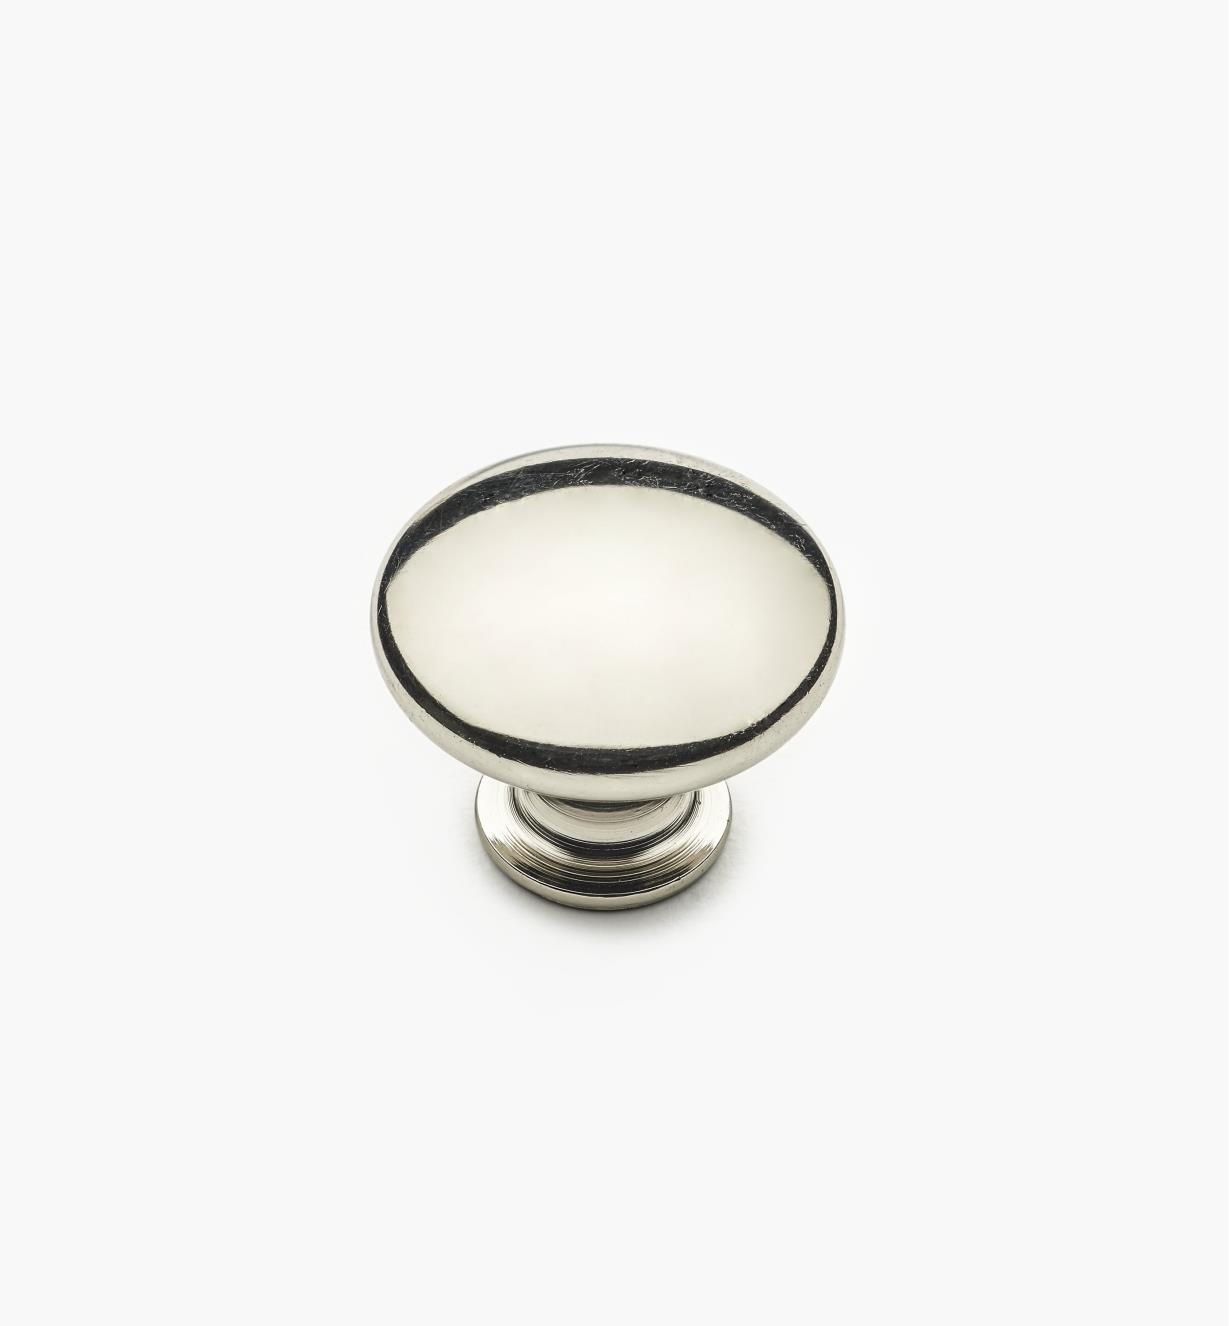 "02W4345 - 1"" x 3/4"" Polished Nickel Knob"